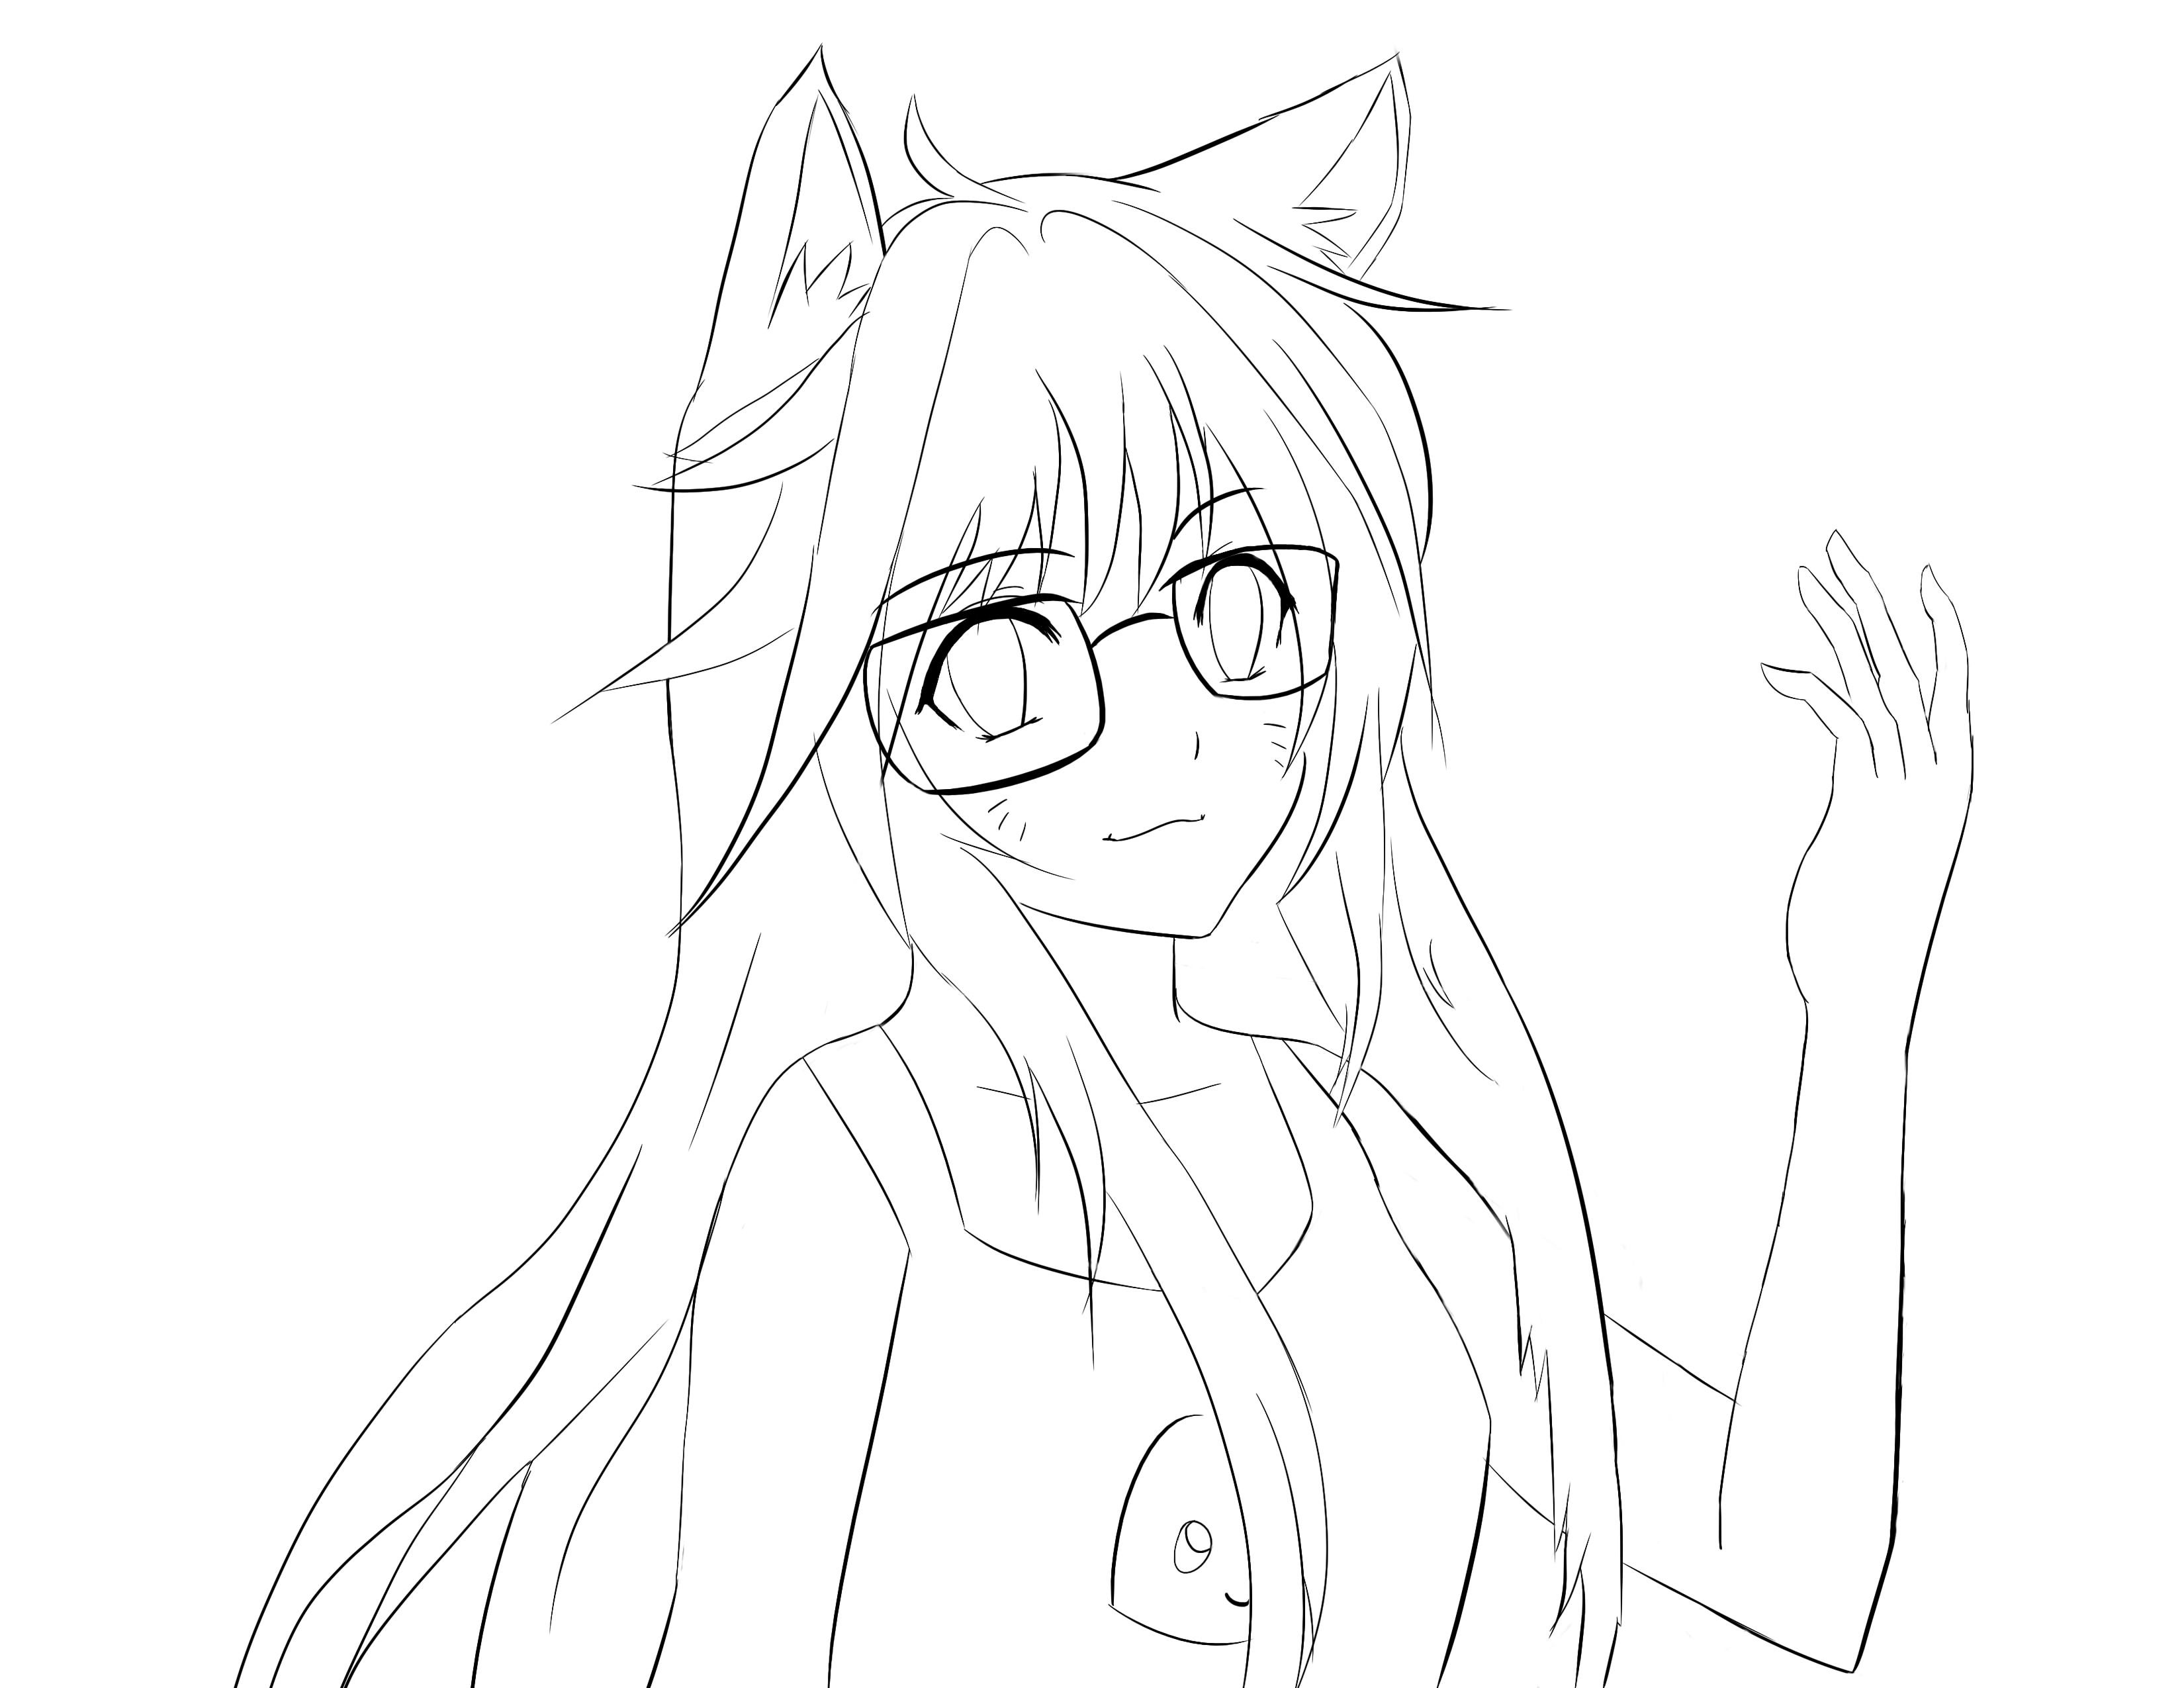 3300x2550 Drawing Of A Friend + Ahri Lineart By Zeroxpoint